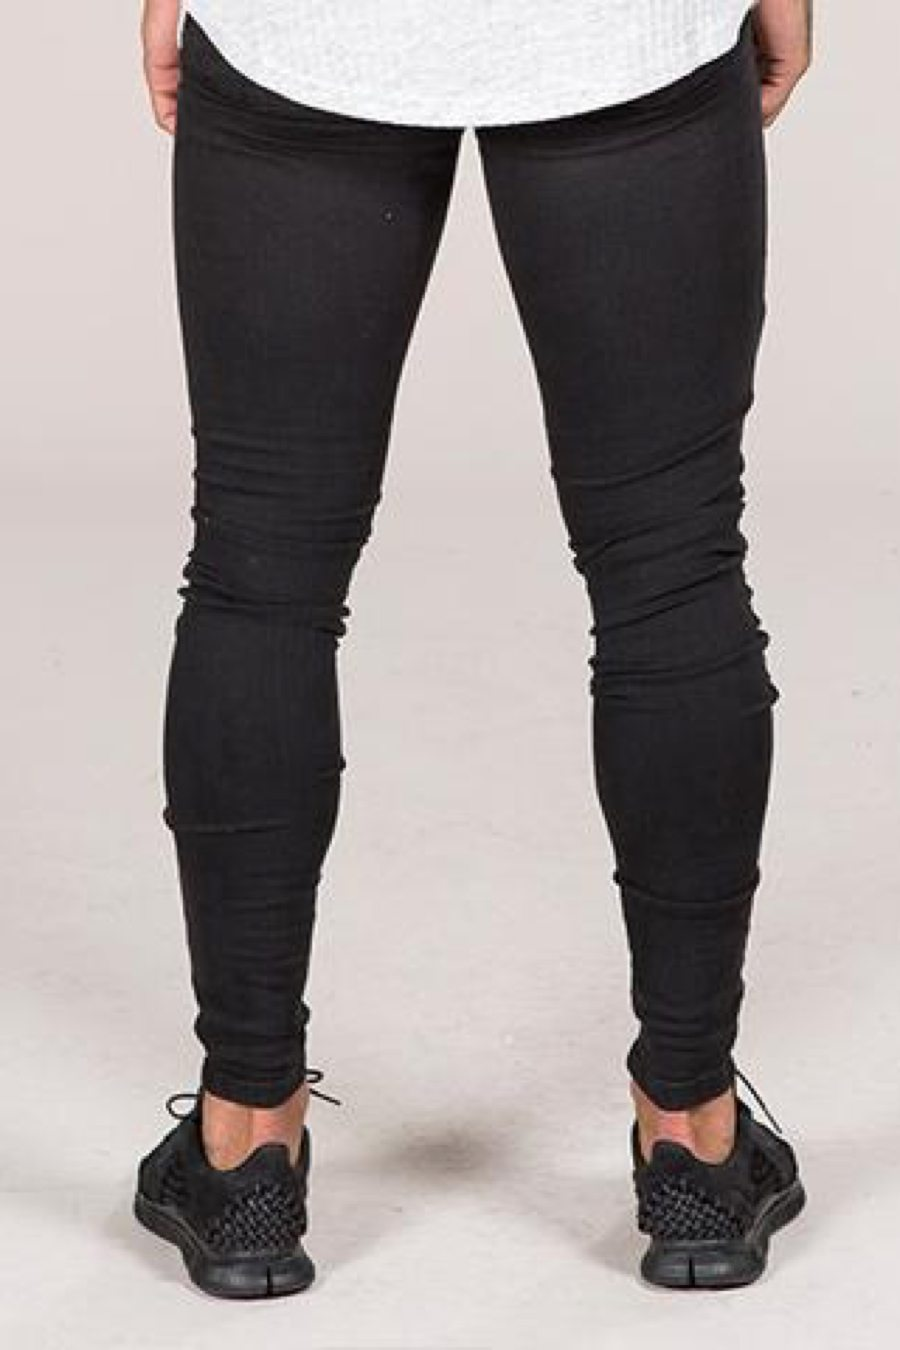 Emulate Marquee Ripped Skinny Jeans - Black - 2